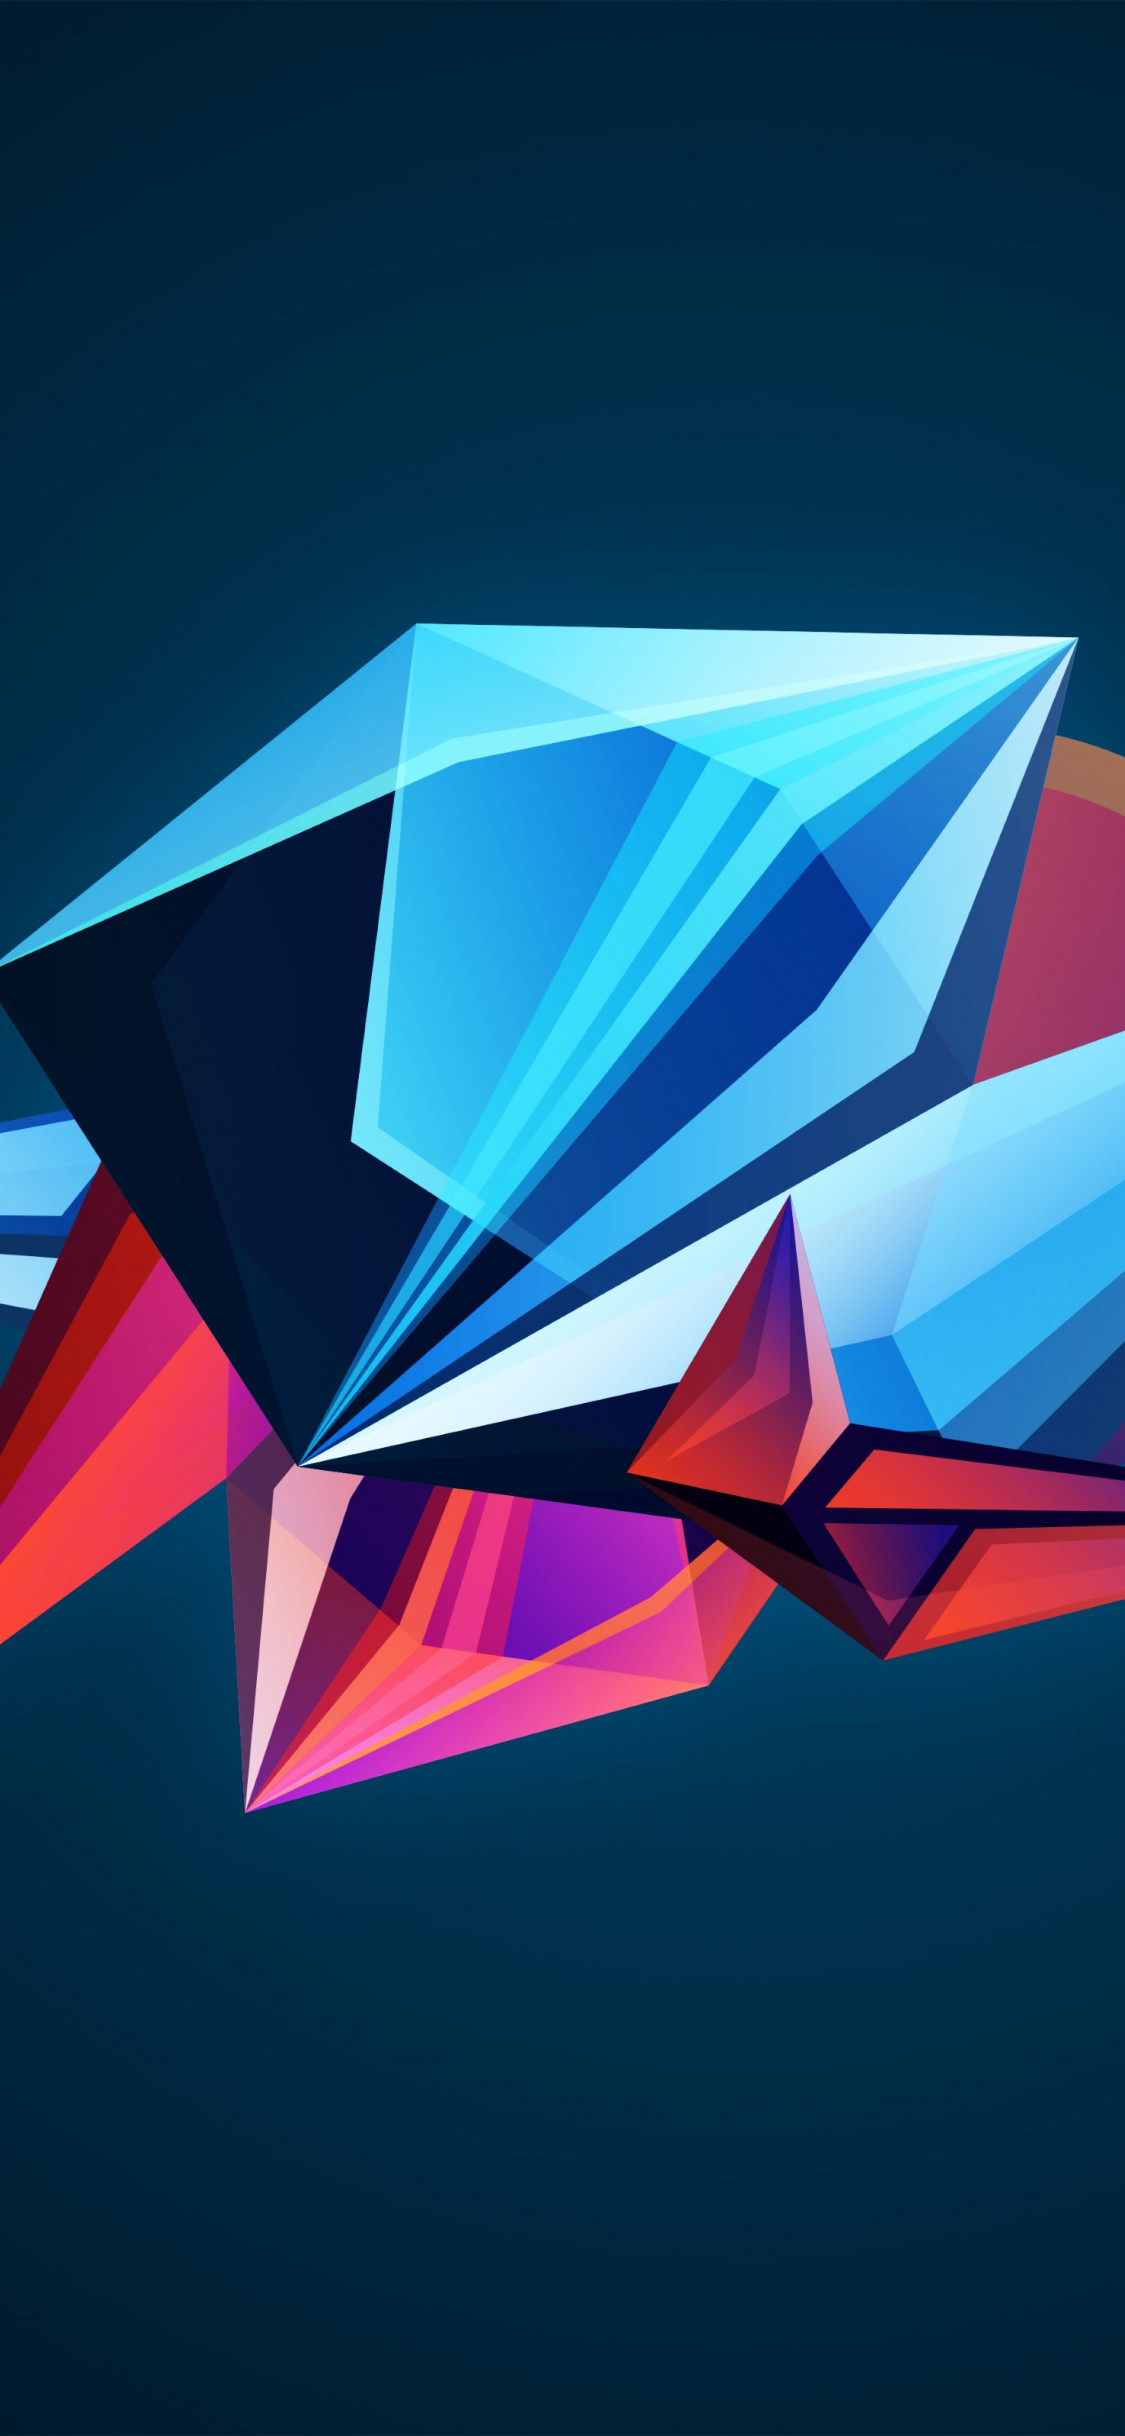 Abstract 3D shapes wallpaper 1125x2436